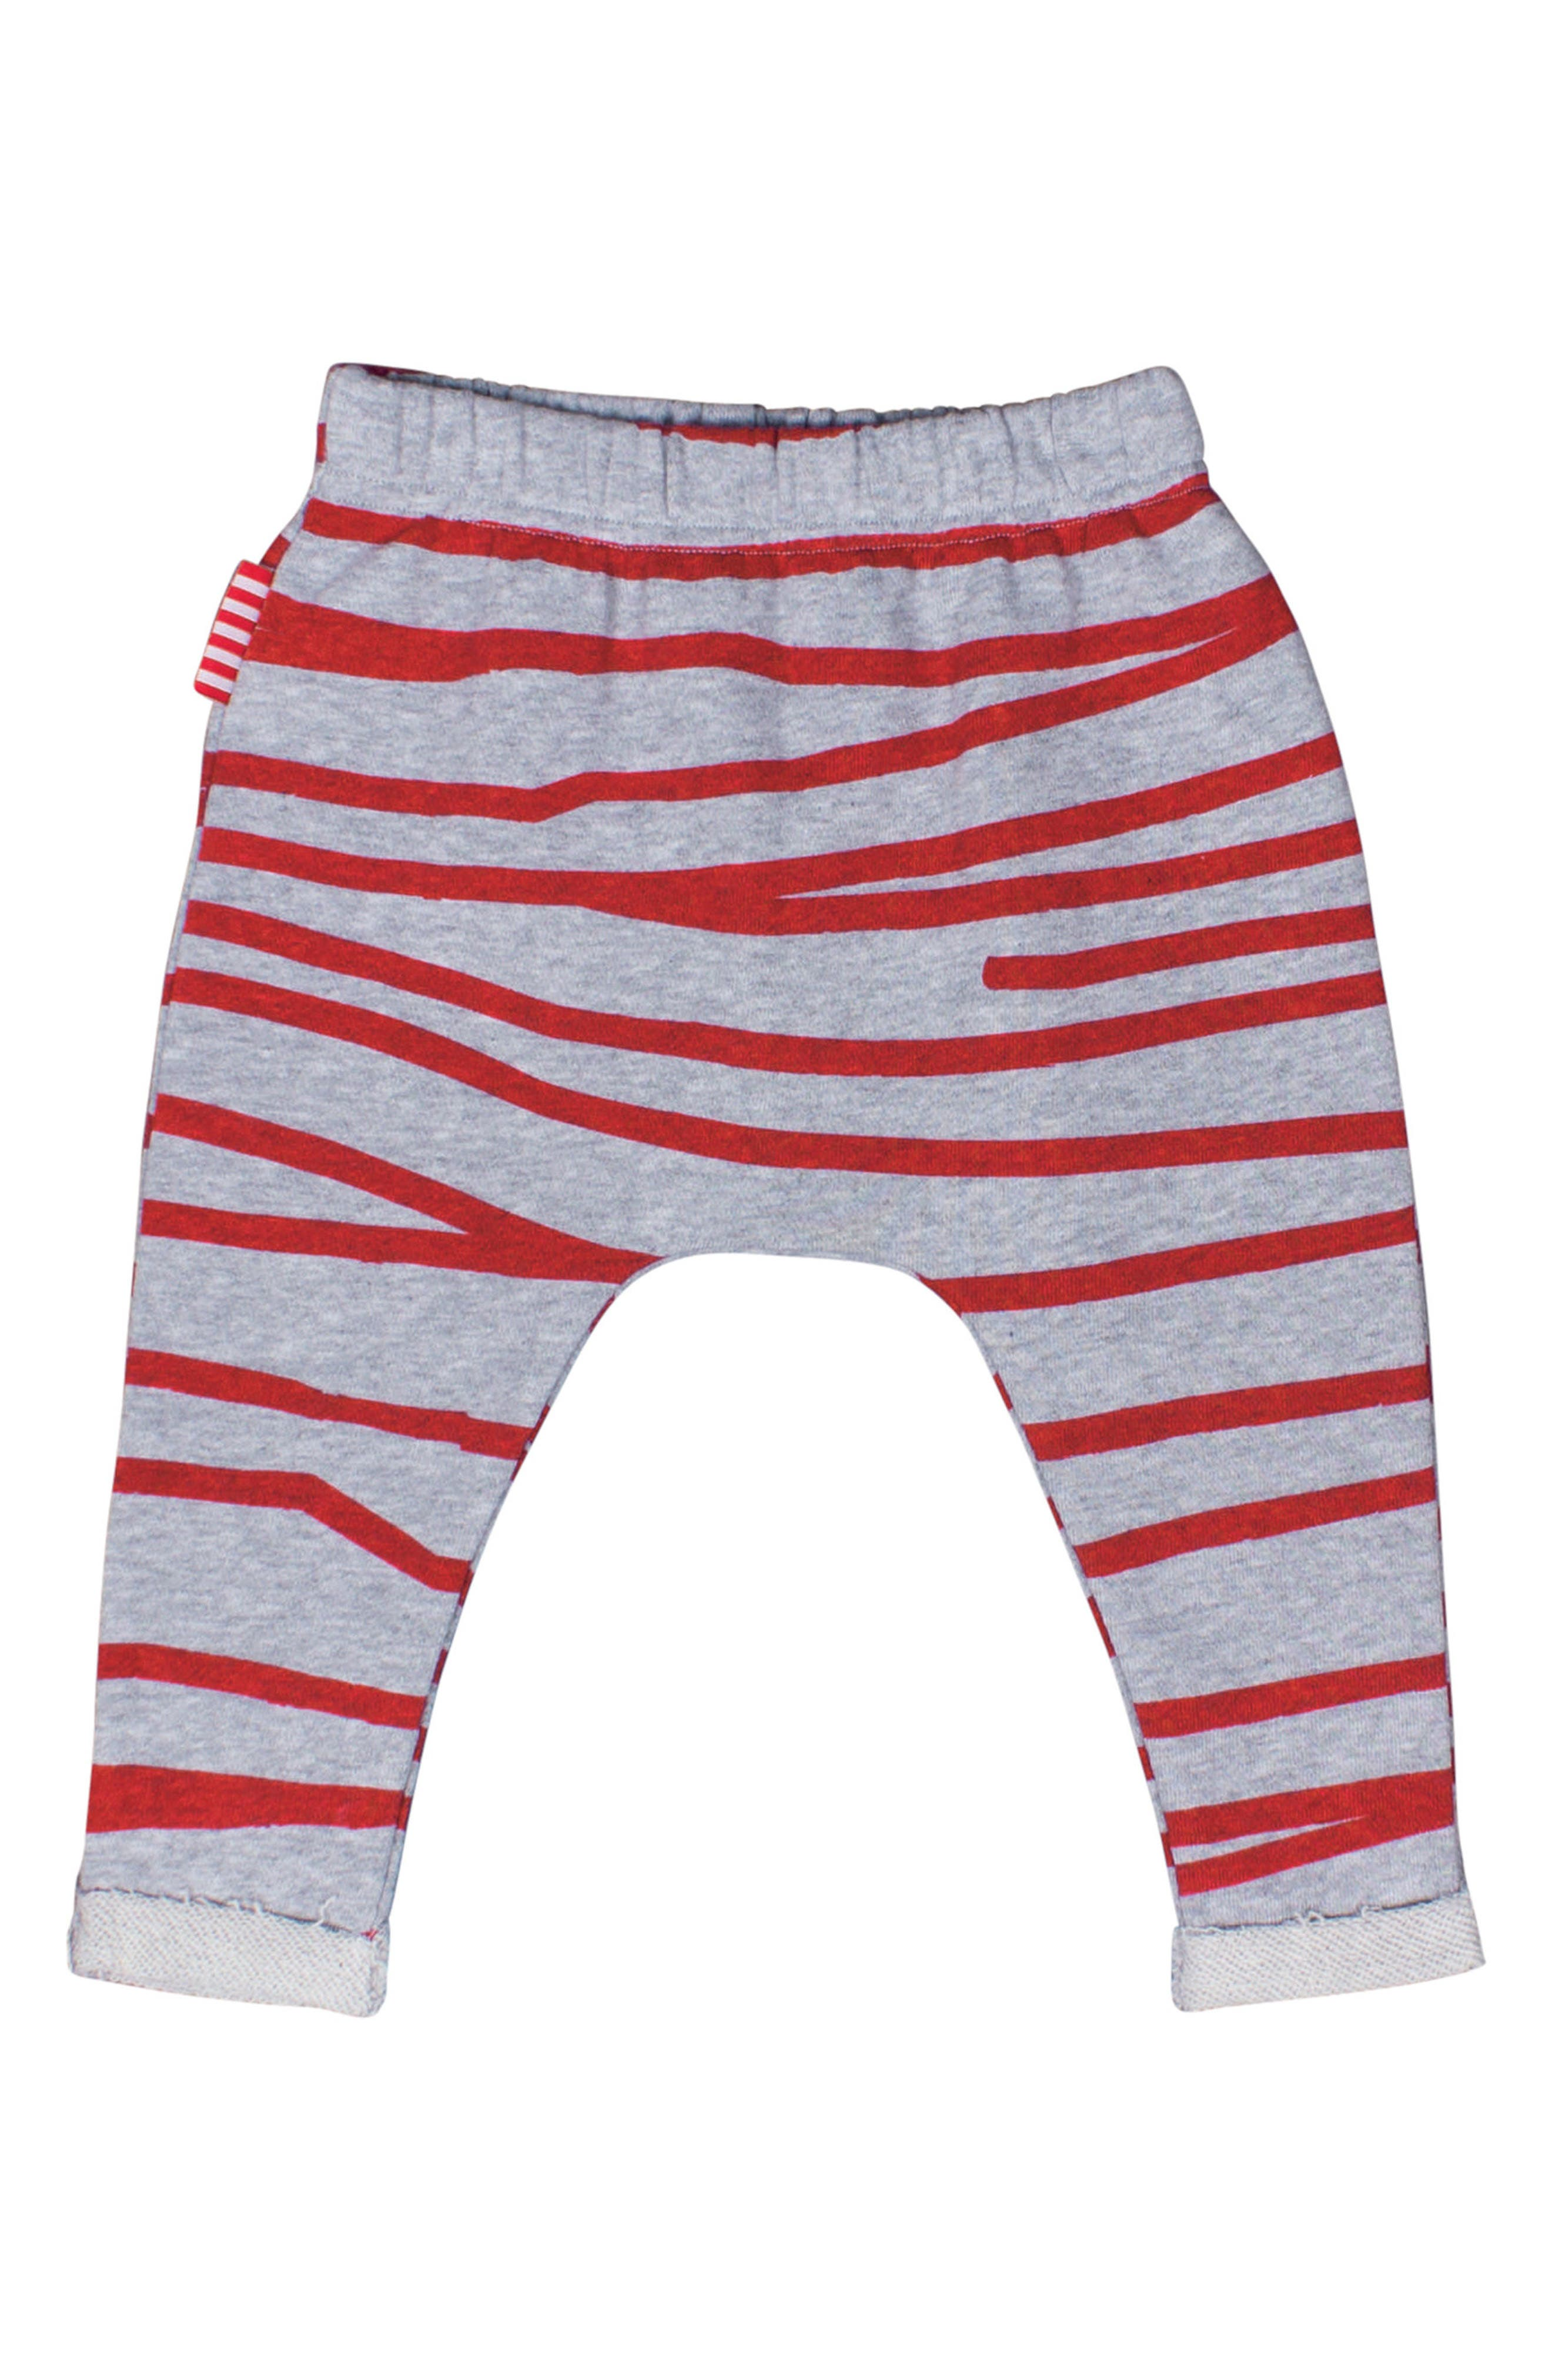 Stripe Jogger Pants,                         Main,                         color, 035